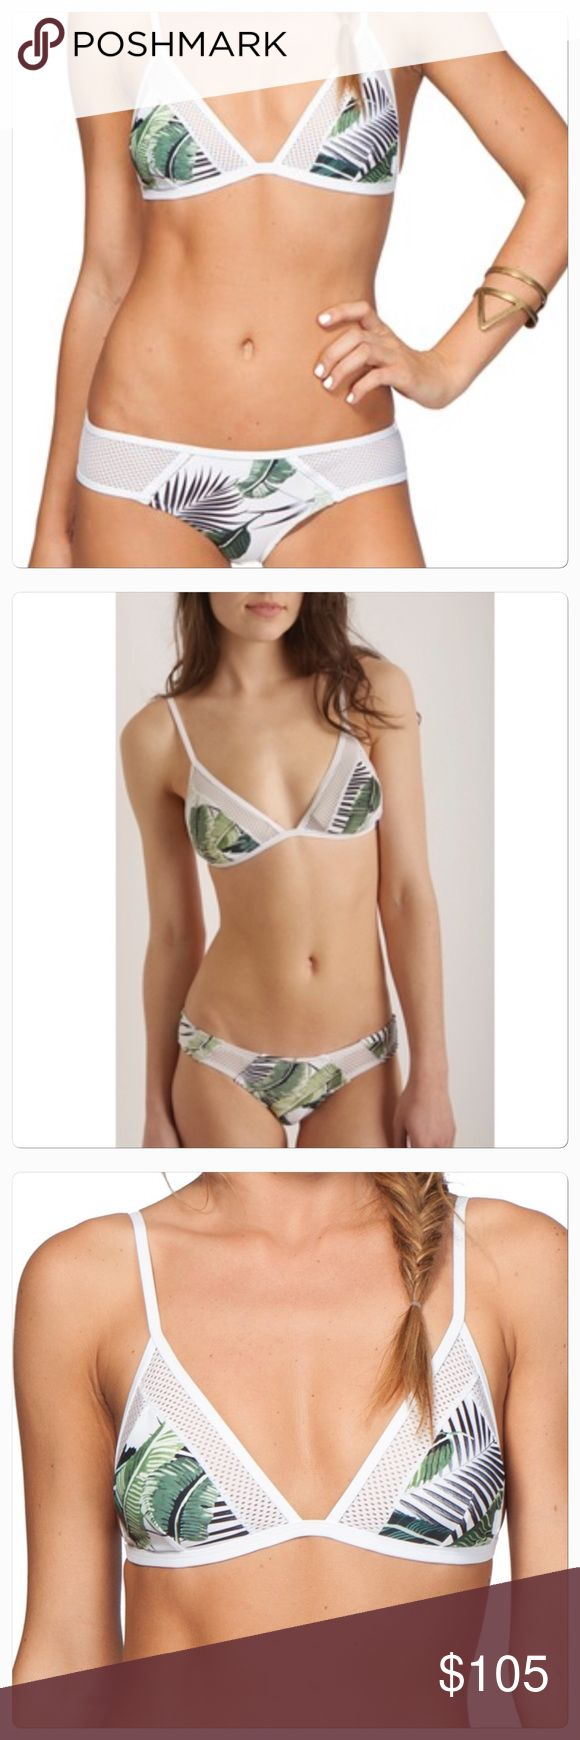 NWT Rip Curl ISLAND PALM Bikini  Brand New With Tags! Sold Out! HTF!   PALM ISLAND Floral Print Triangle Bikini Top - Sz Medium A bright palm print livens up a sporty triangle bikini top accented with airy mesh details edging the cups and back. •Clasps behind back. •Lined. •85% polyamide, 15% elastane. •Hand wash cold, line dry. •By Rip Curl; imported.  PALM ISLAND Hipster - Sz Small  Cheeky coverage printed microfiber bikini bottom with front mesh insets.  •Material is Polyamide and…